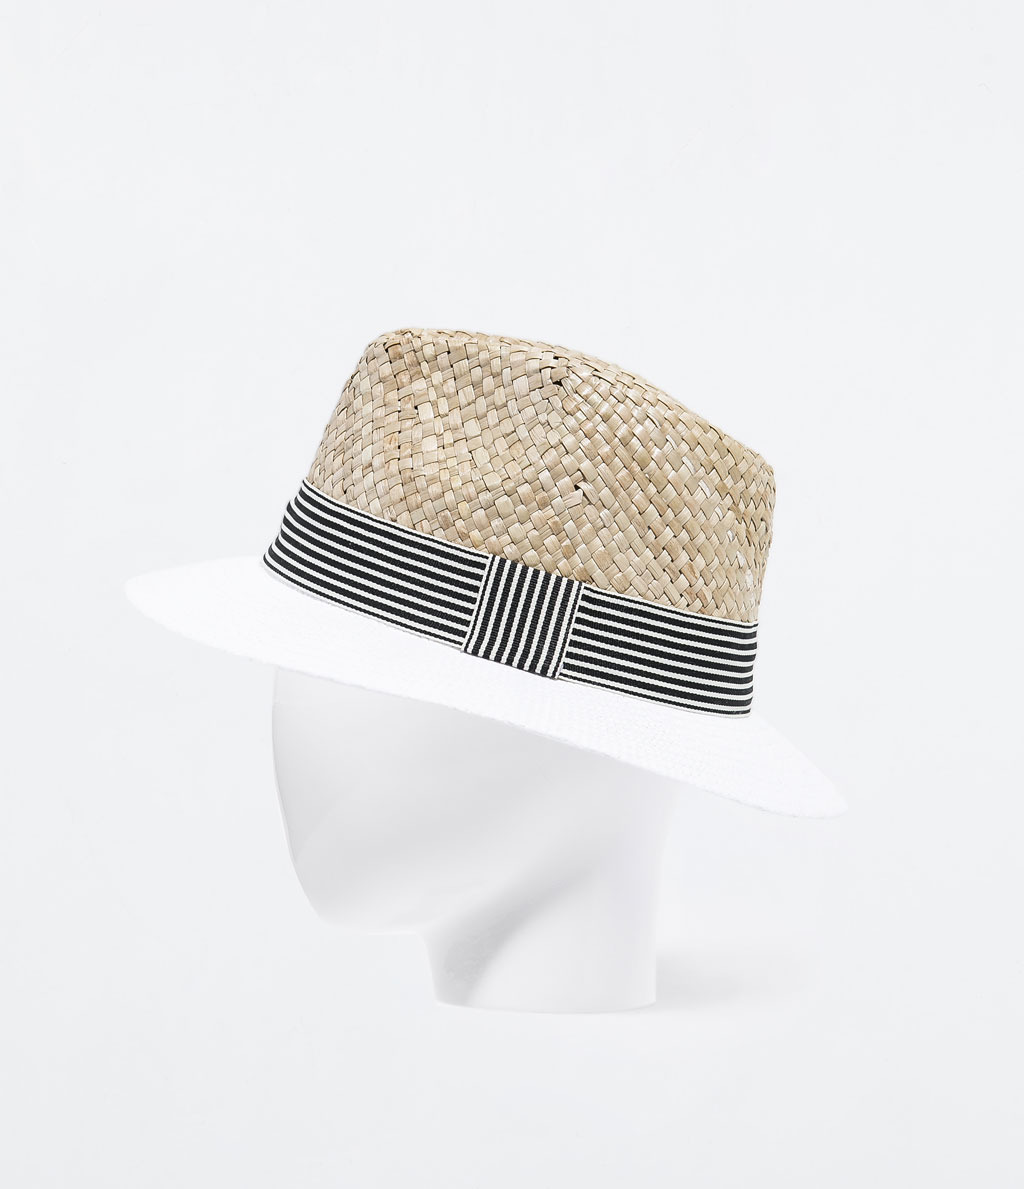 Contrast Brim Raffia Hat - predominant colour: nude; secondary colour: black; occasions: casual, holiday; type of pattern: light; embellishment: ribbon; style: sunhat; size: standard; material: macrame/raffia/straw; pattern: striped; season: s/s 2014